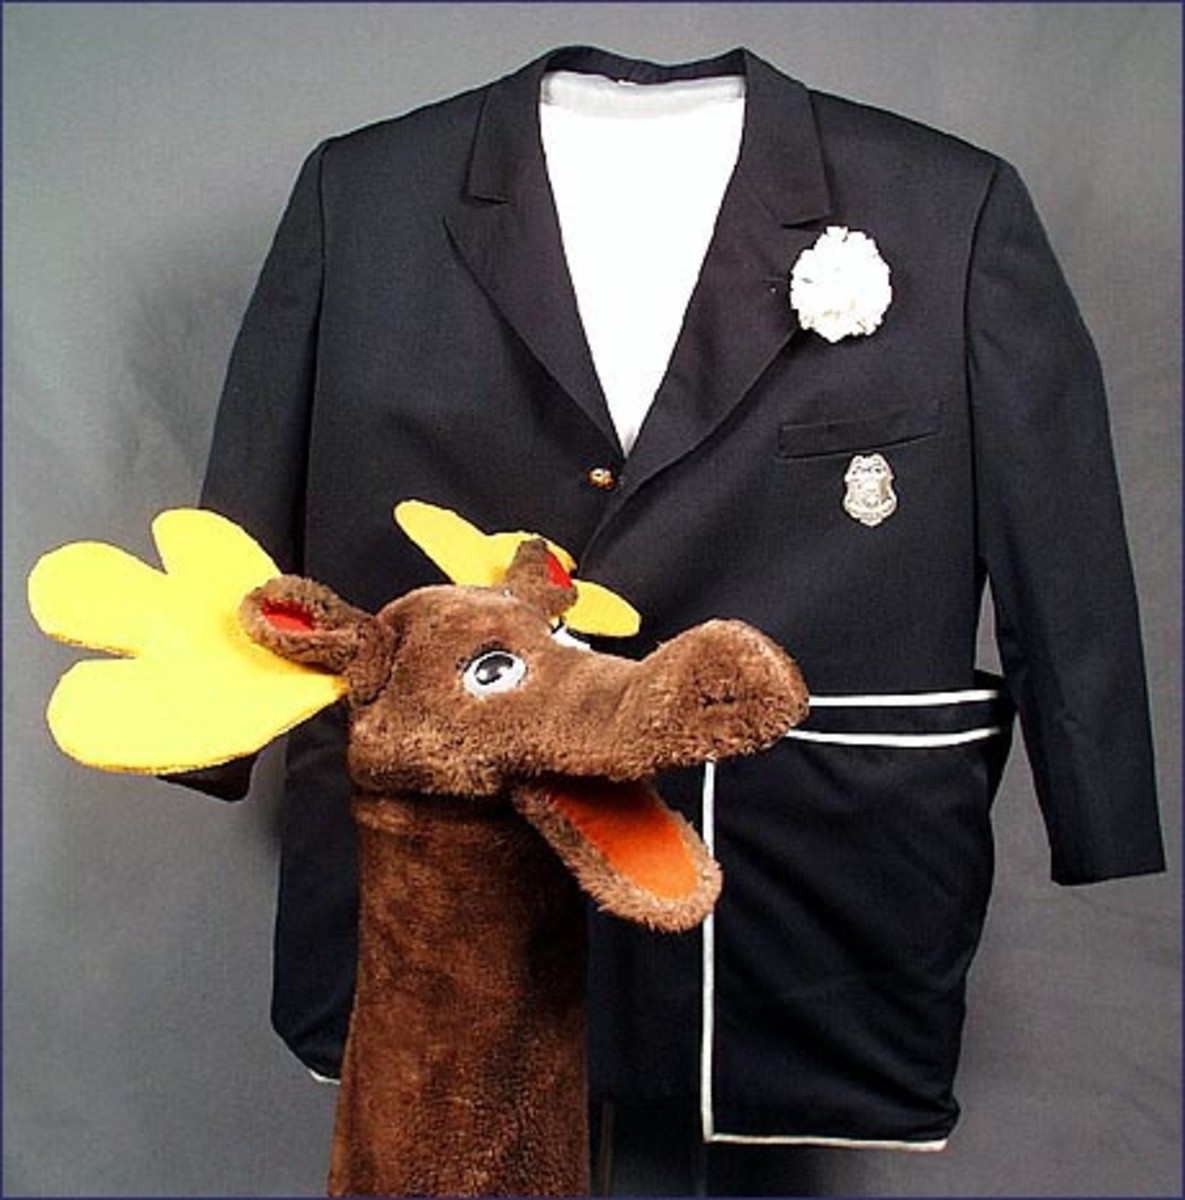 Mr. Moose at the Smithsonian Institution with one of the Captain's original jackets. In the 1980s, the jacket was a red one and in the late 1960s, the Captain wore jackets made of paper to show viewers a new cloth invented with paper.